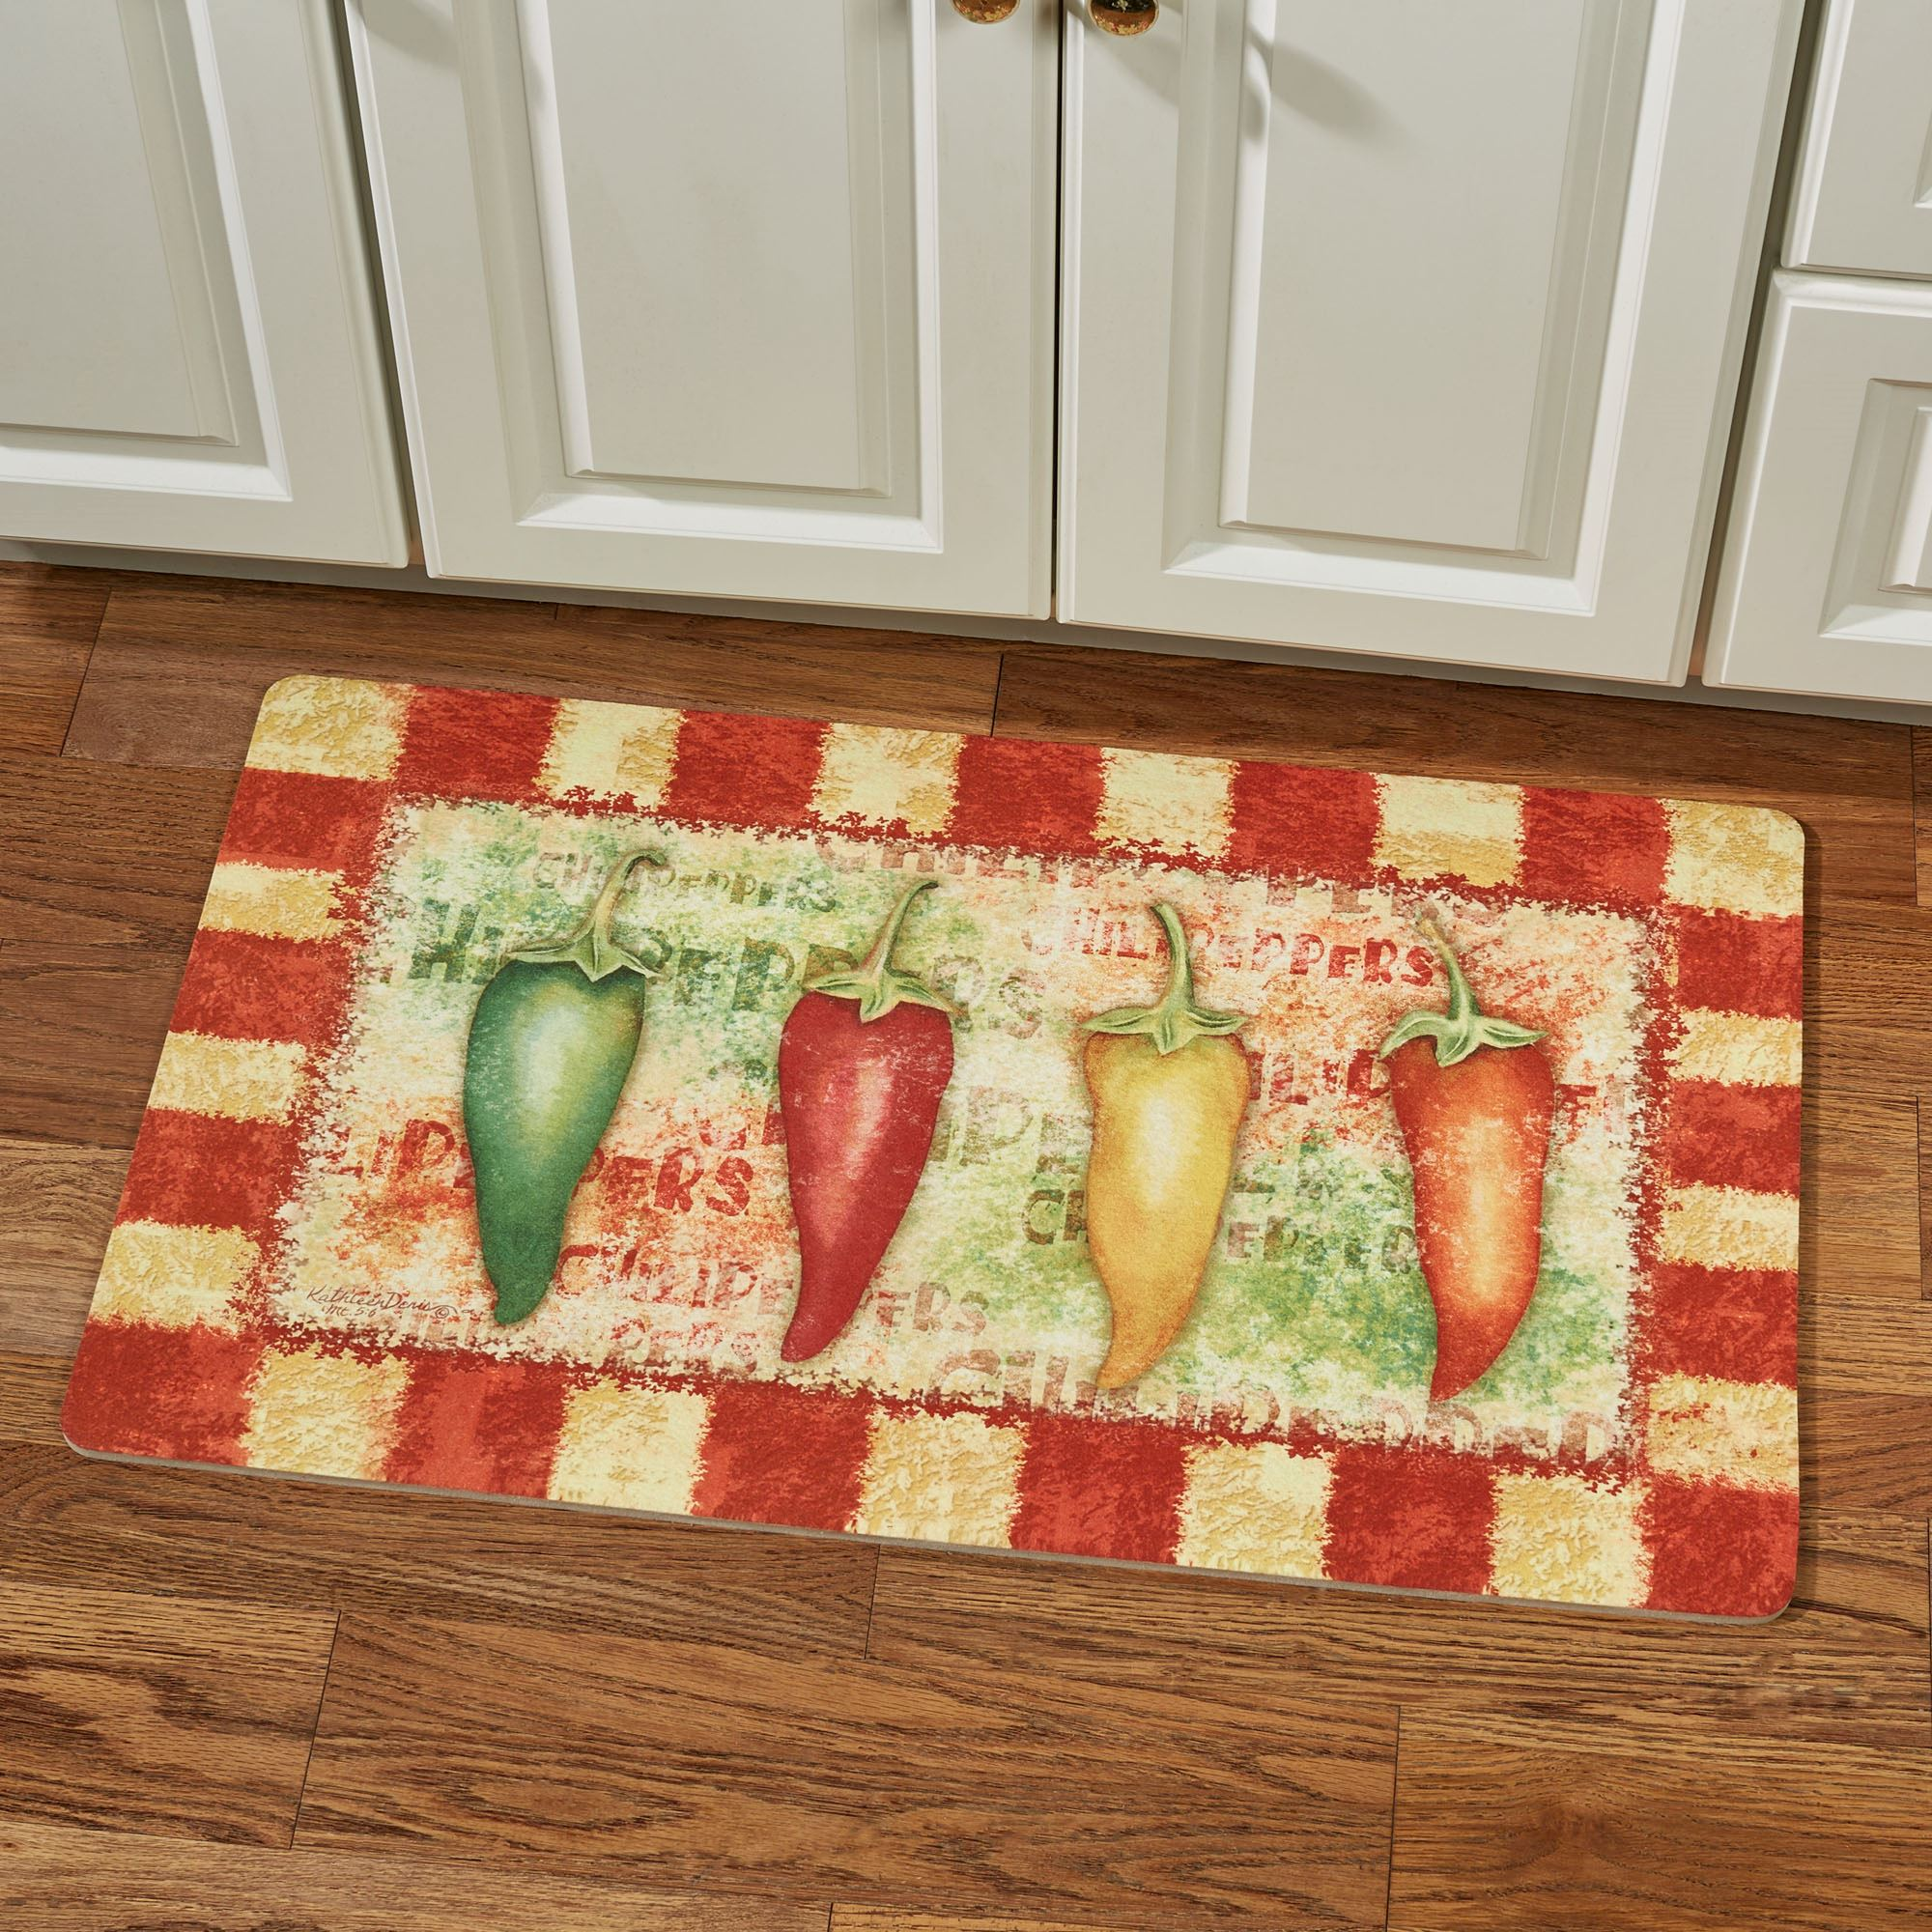 Hot And Spicy Chili Pepper Kitchen Comfort Mat